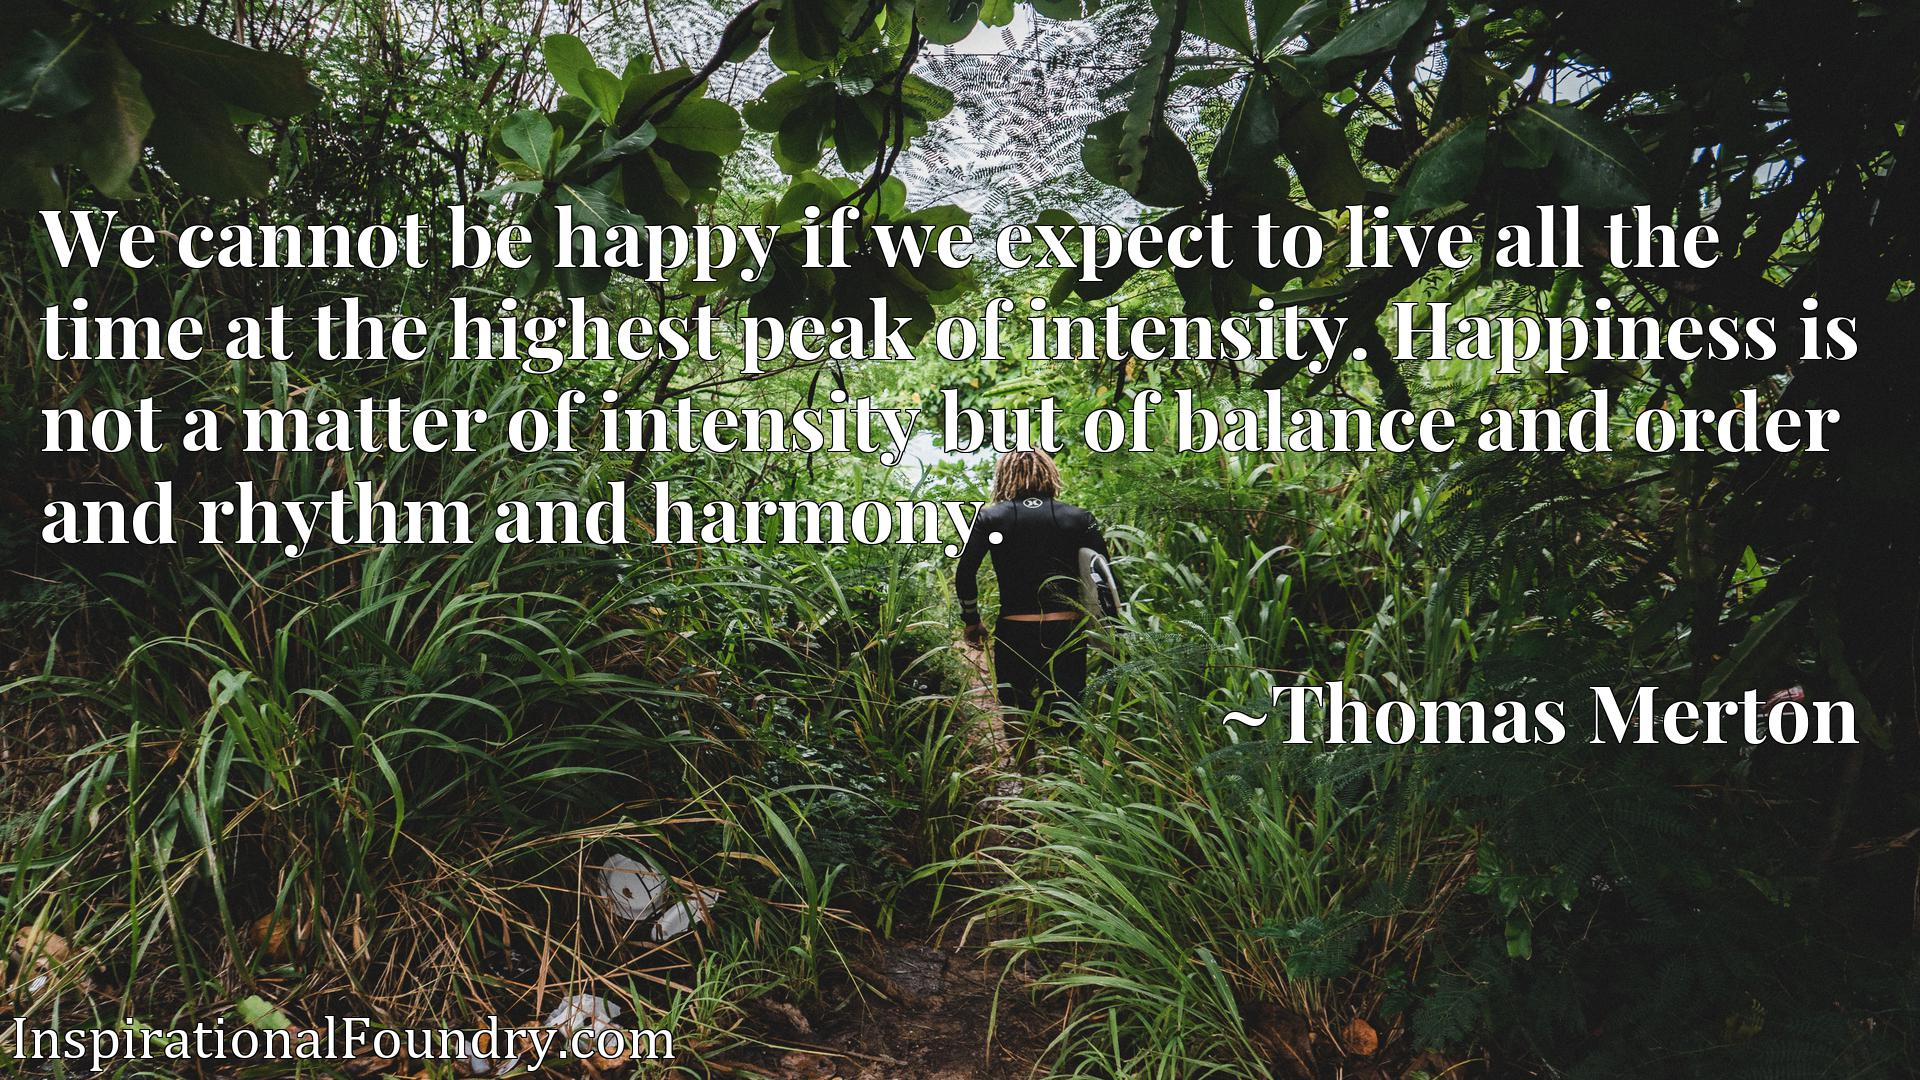 We cannot be happy if we expect to live all the time at the highest peak of intensity. Happiness is not a matter of intensity but of balance and order and rhythm and harmony.